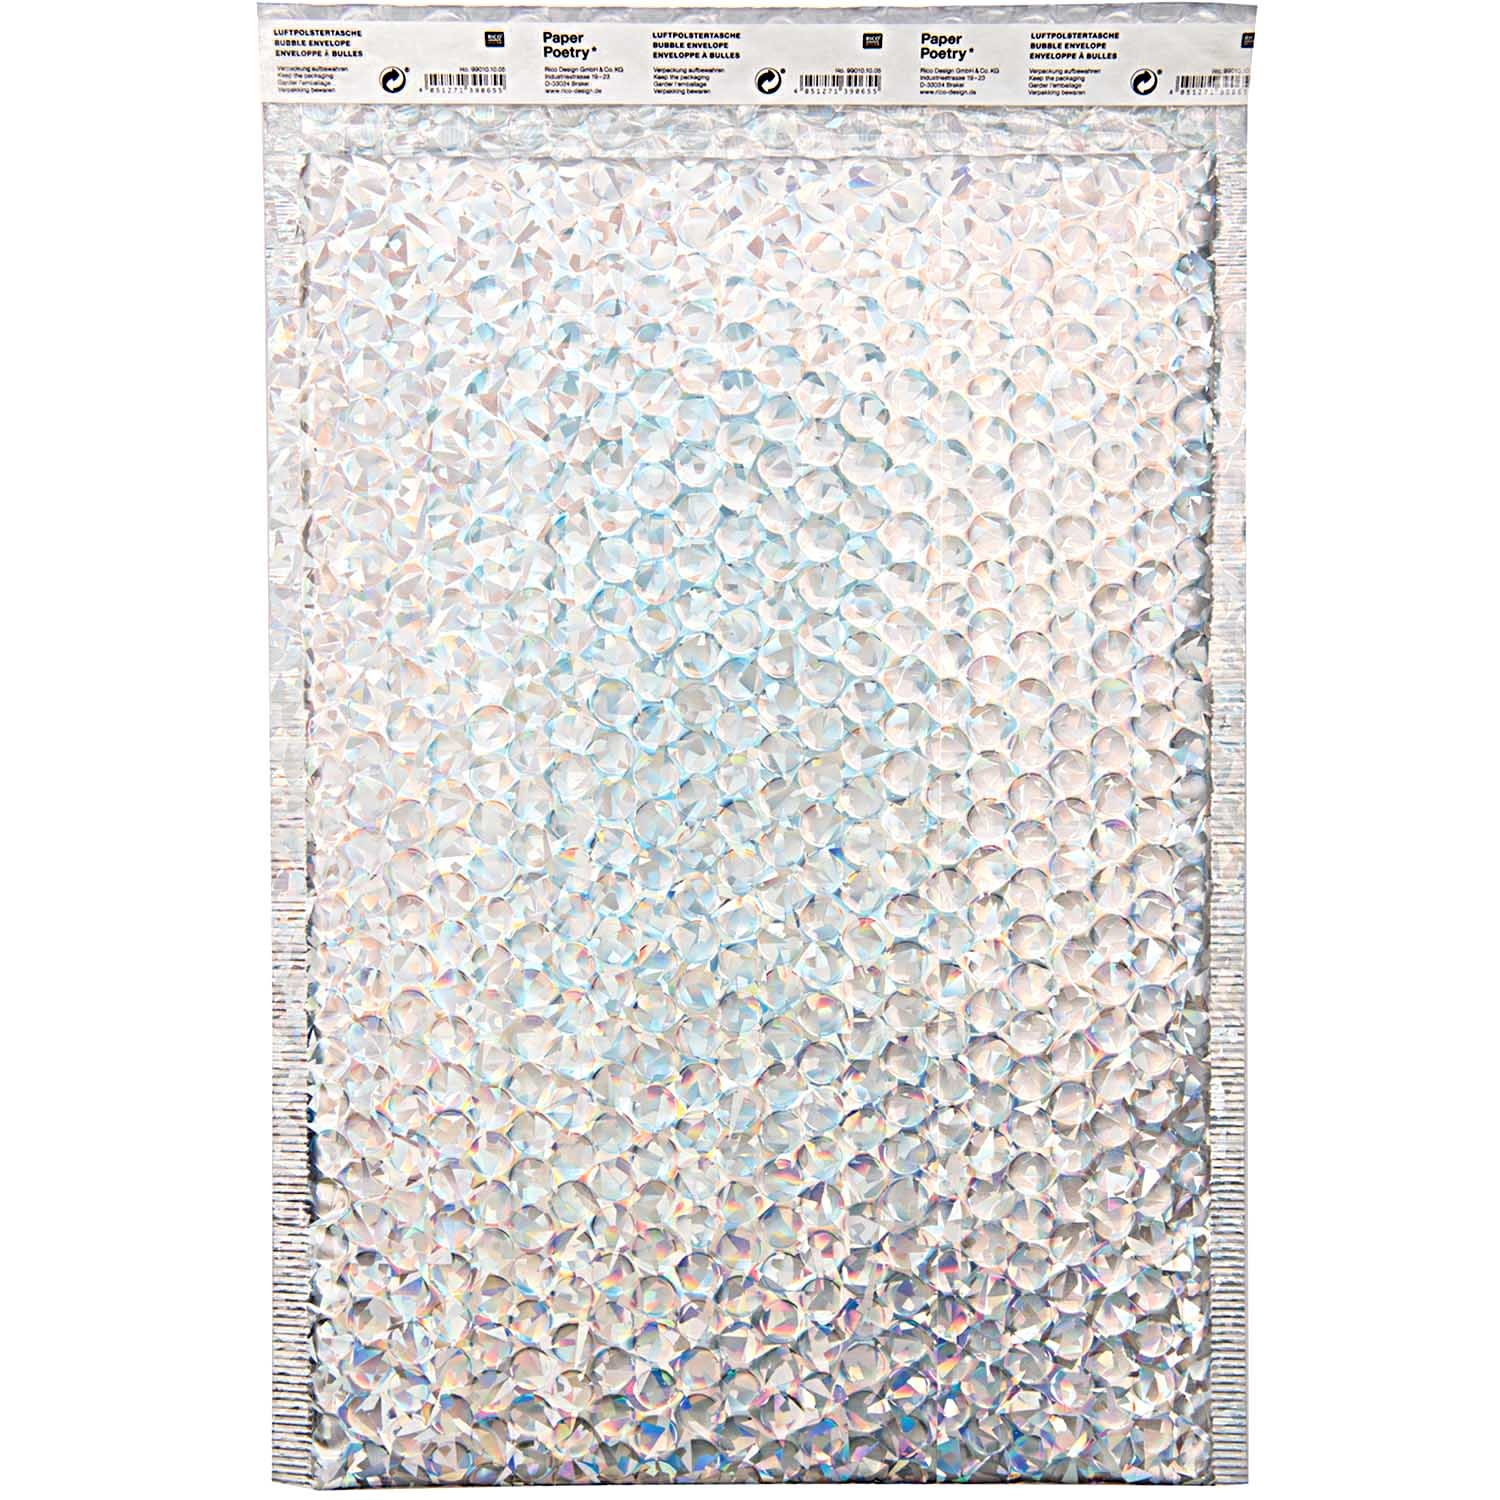 Rico NAY BUBBLE ENVELOPE C4, HOLOGRAPHIC INSIDE 23X34CM/OUTSIDE 25X34CM